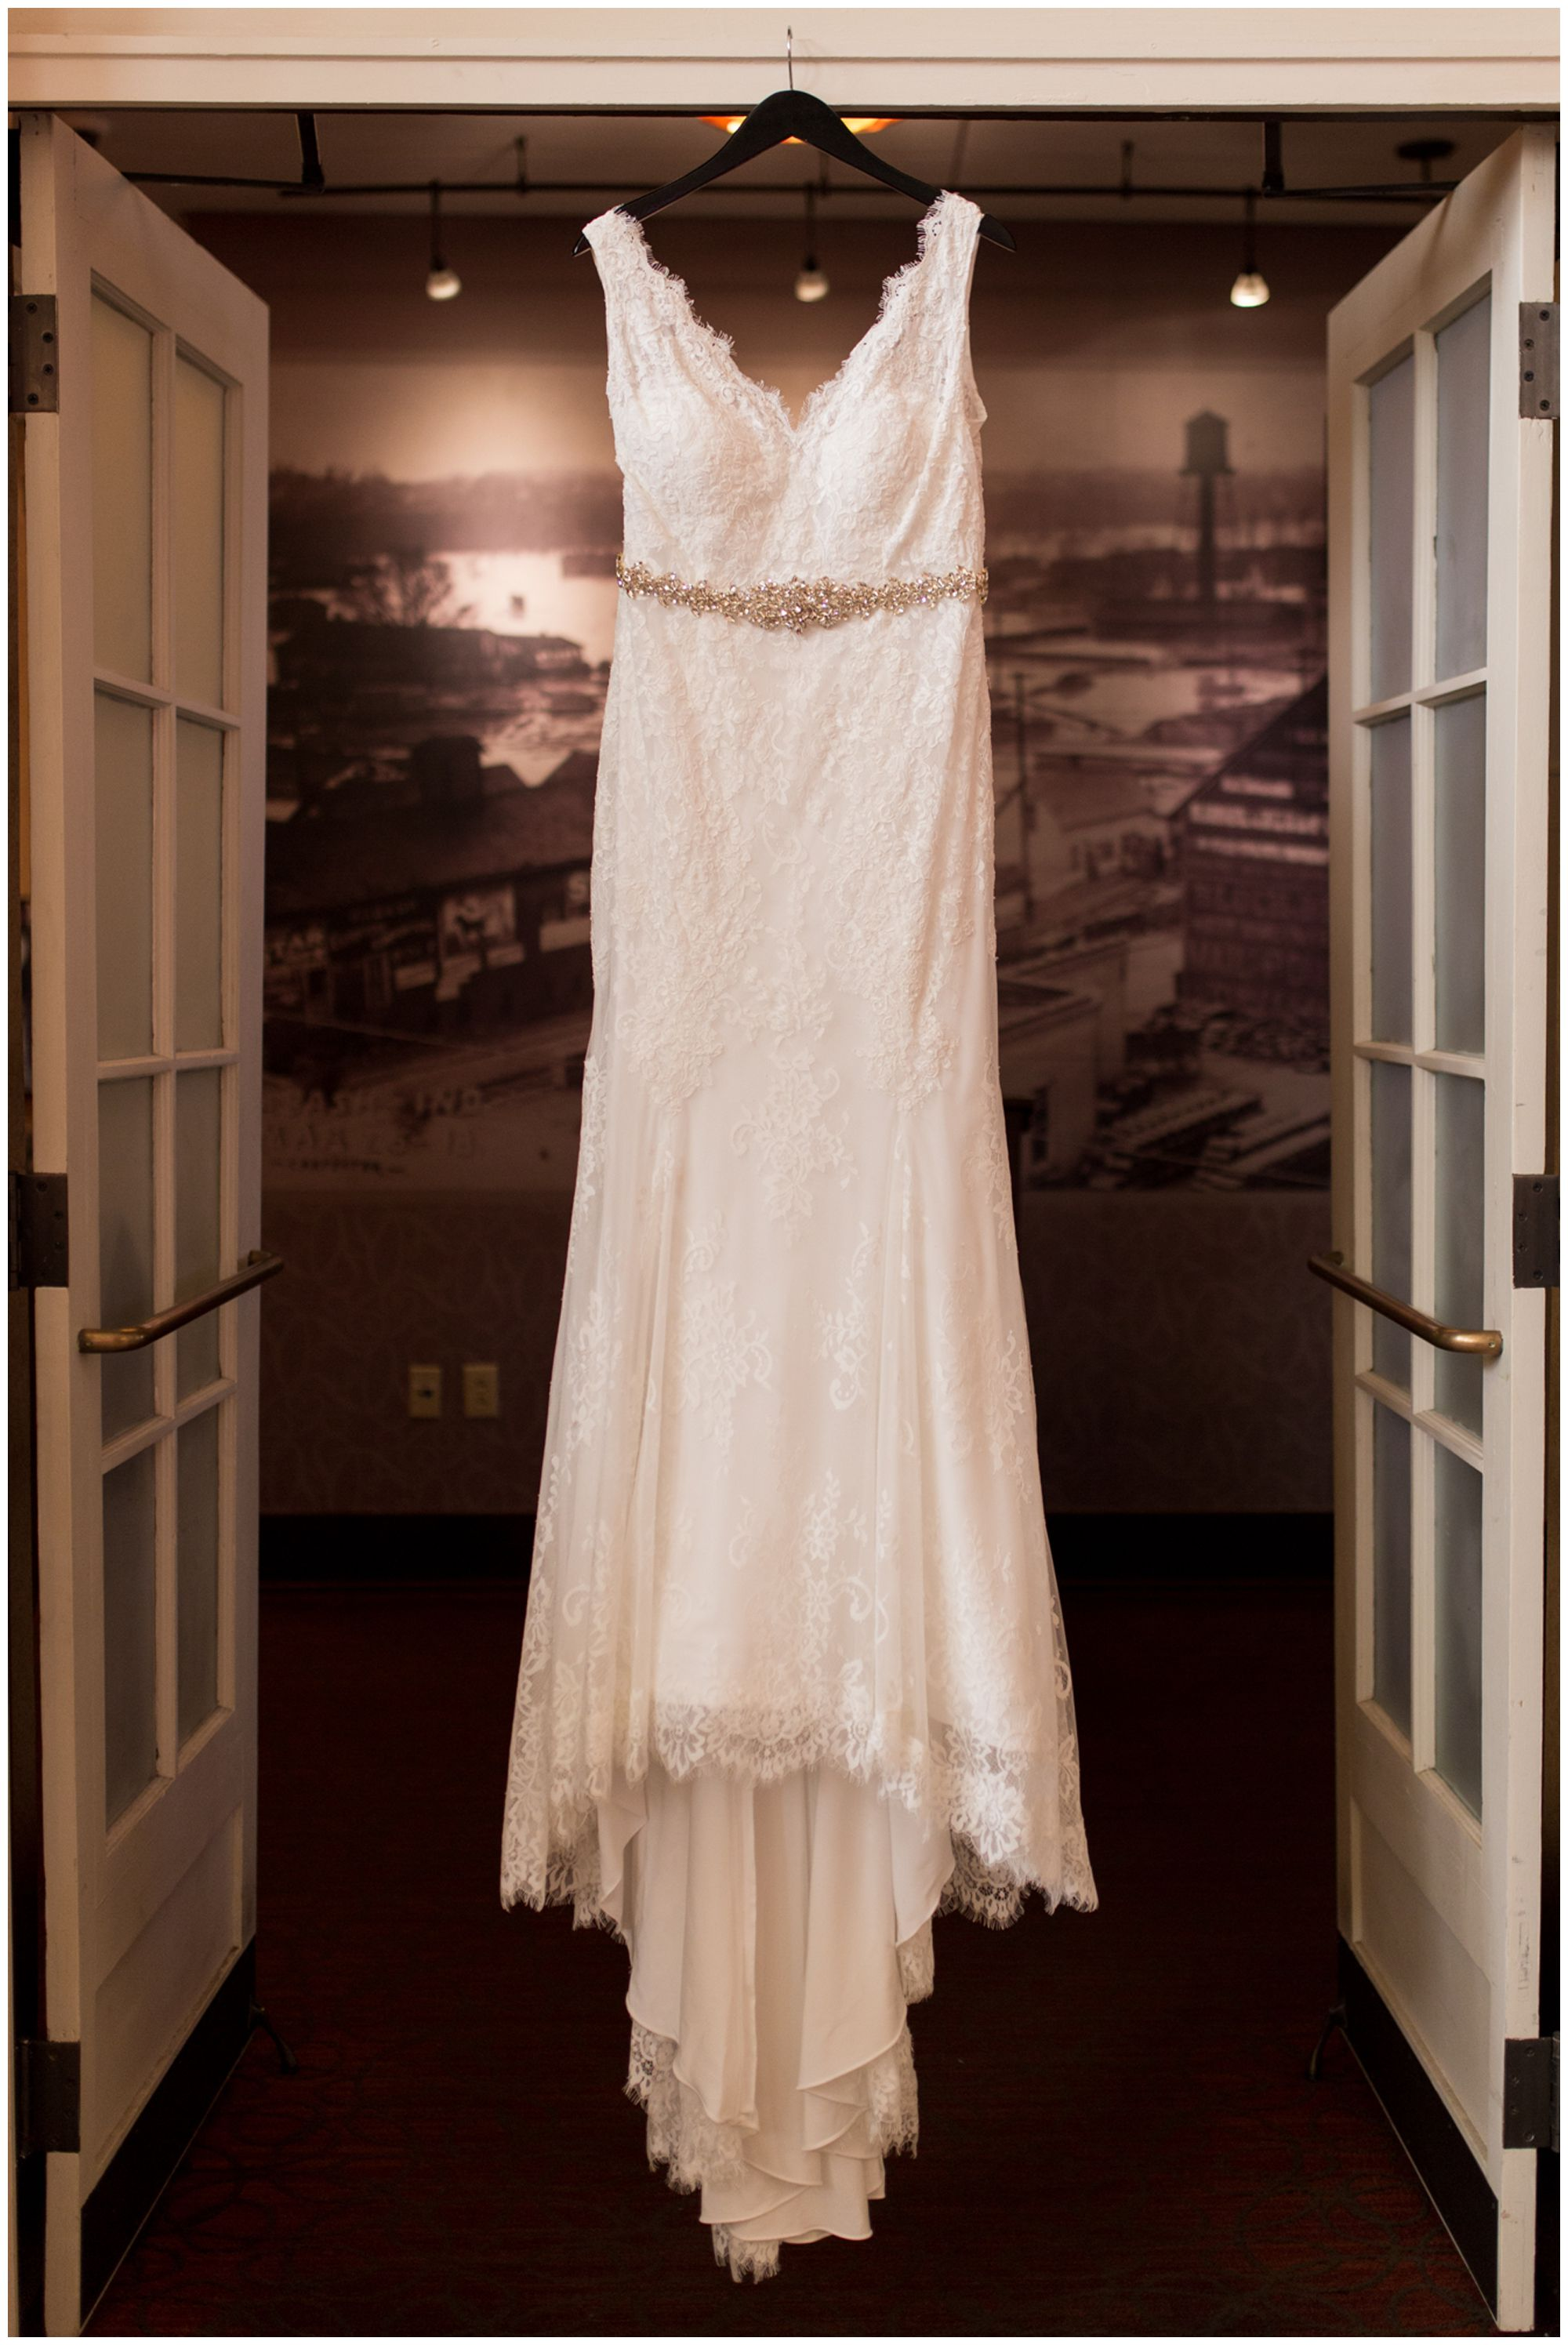 bride's dress from Ellen's Bridal in Wabash Indiana before wedding at Charley Creek Inn